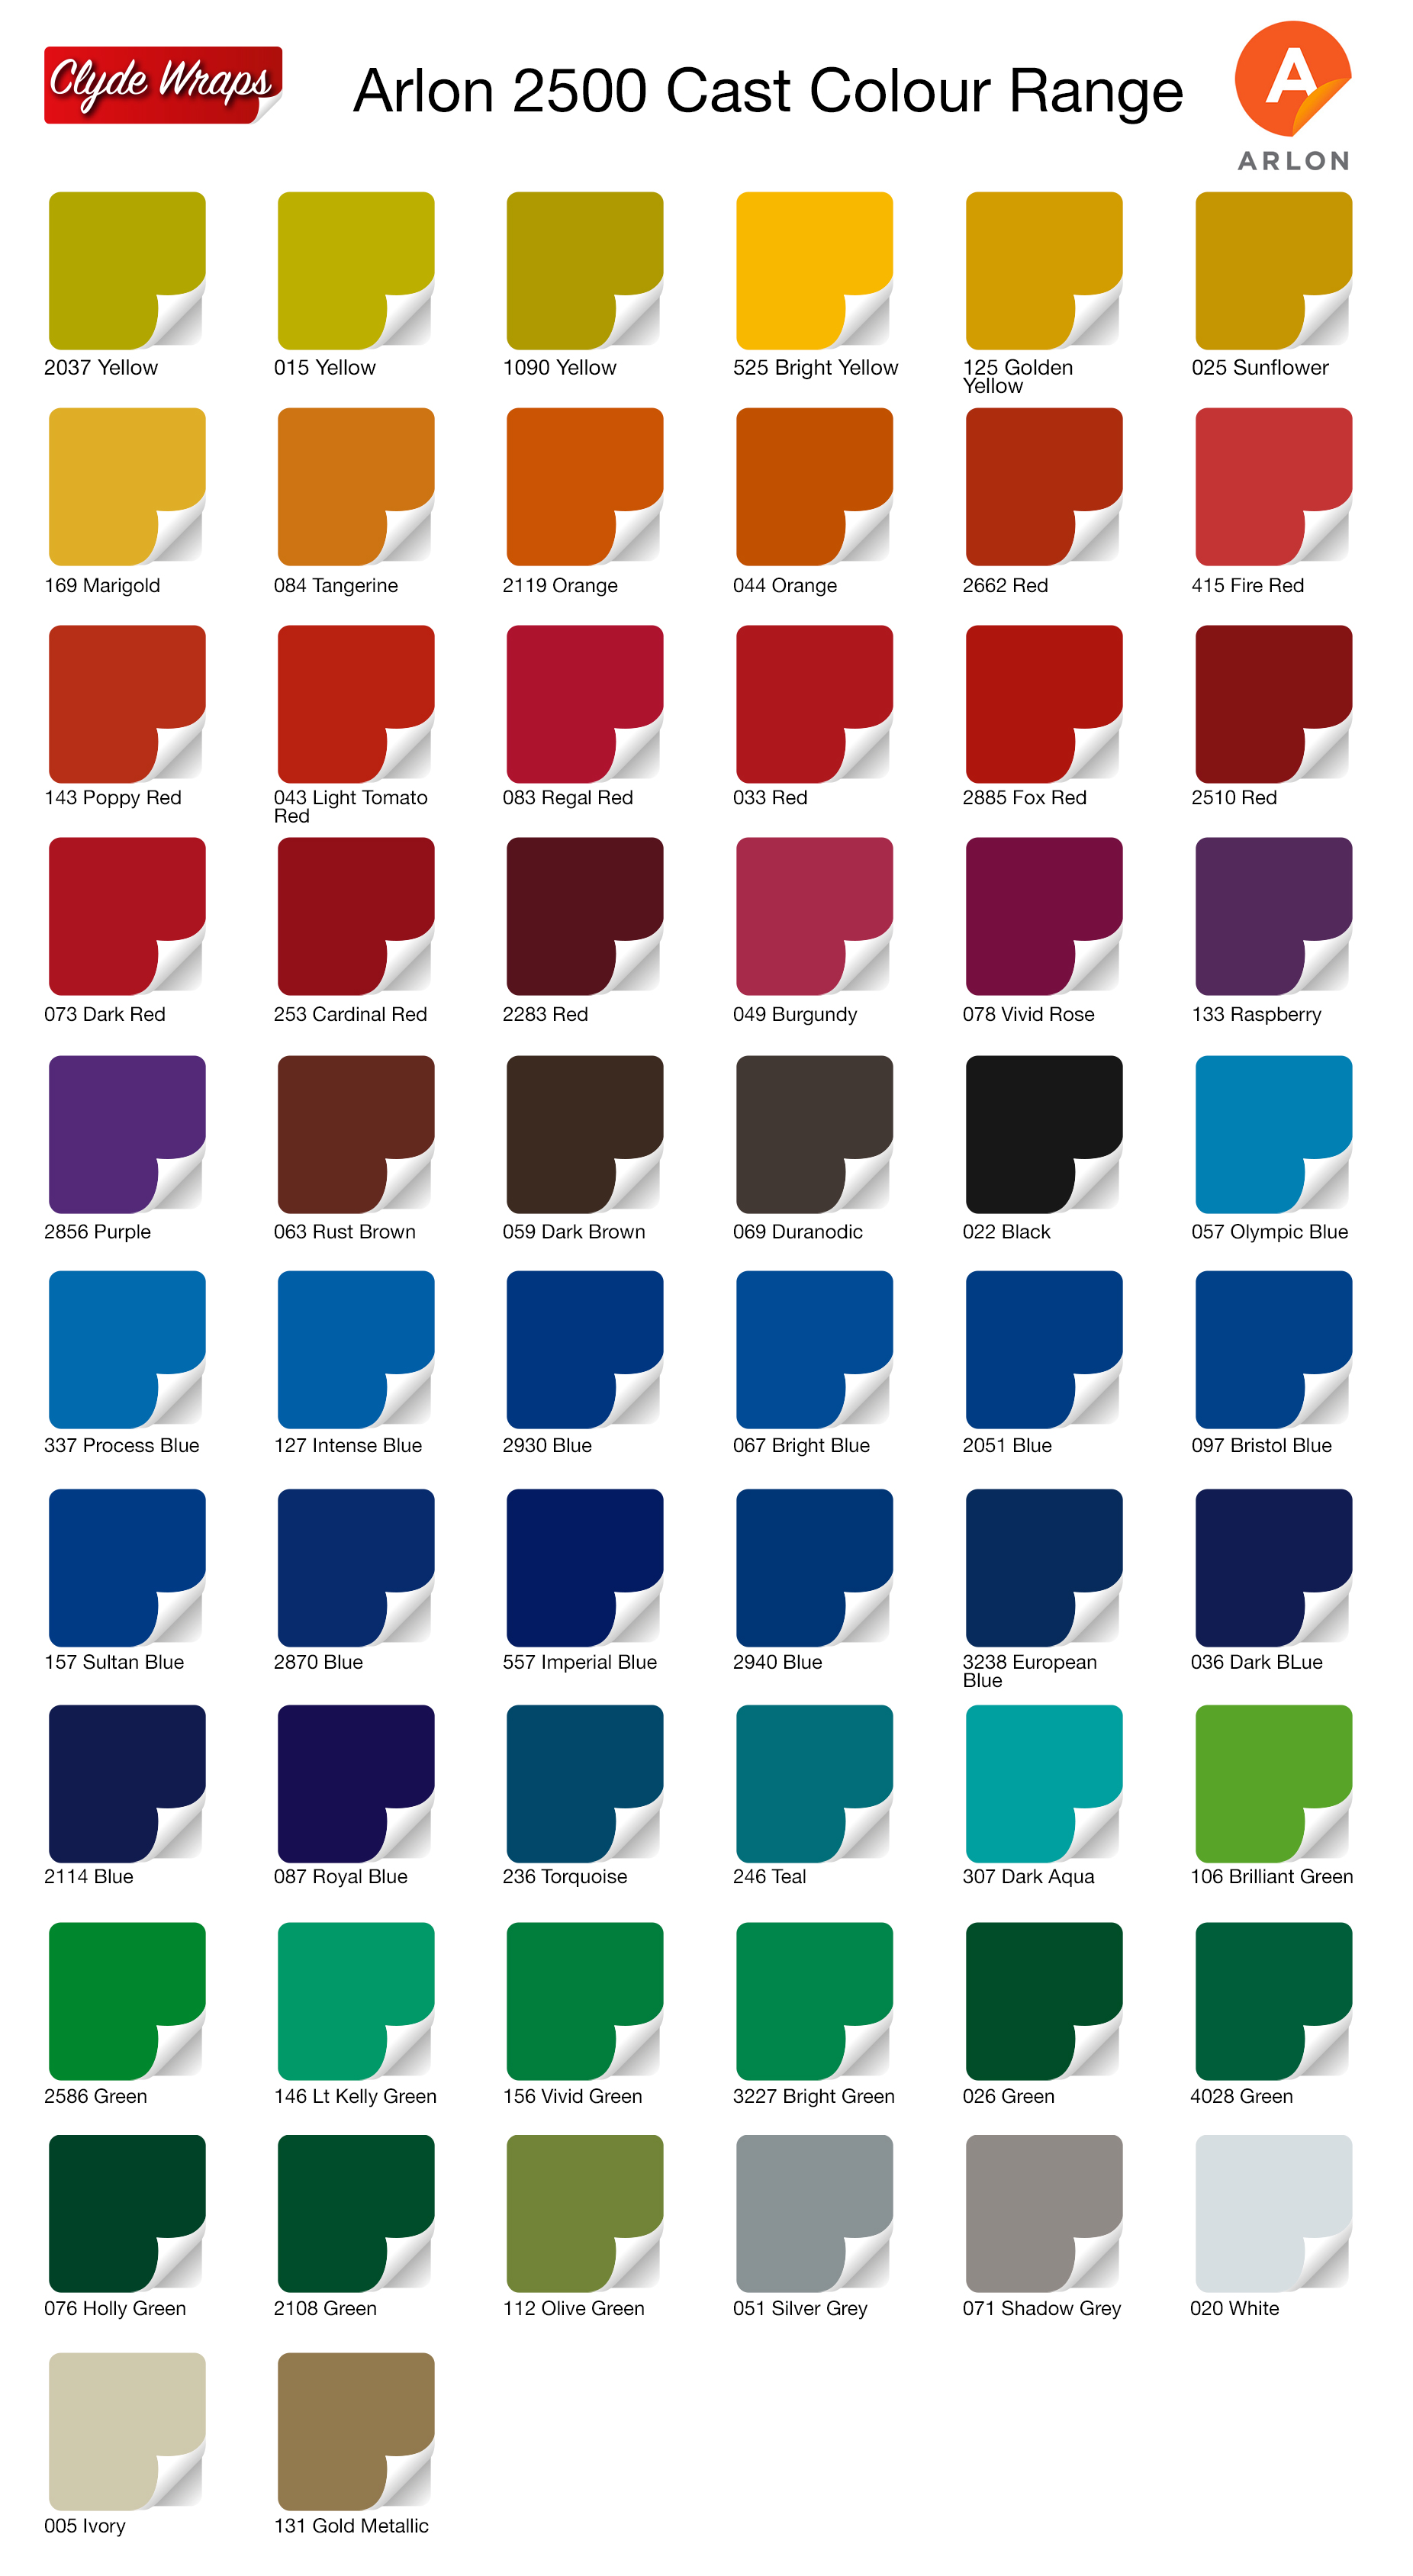 Arlon Vinyl Colours